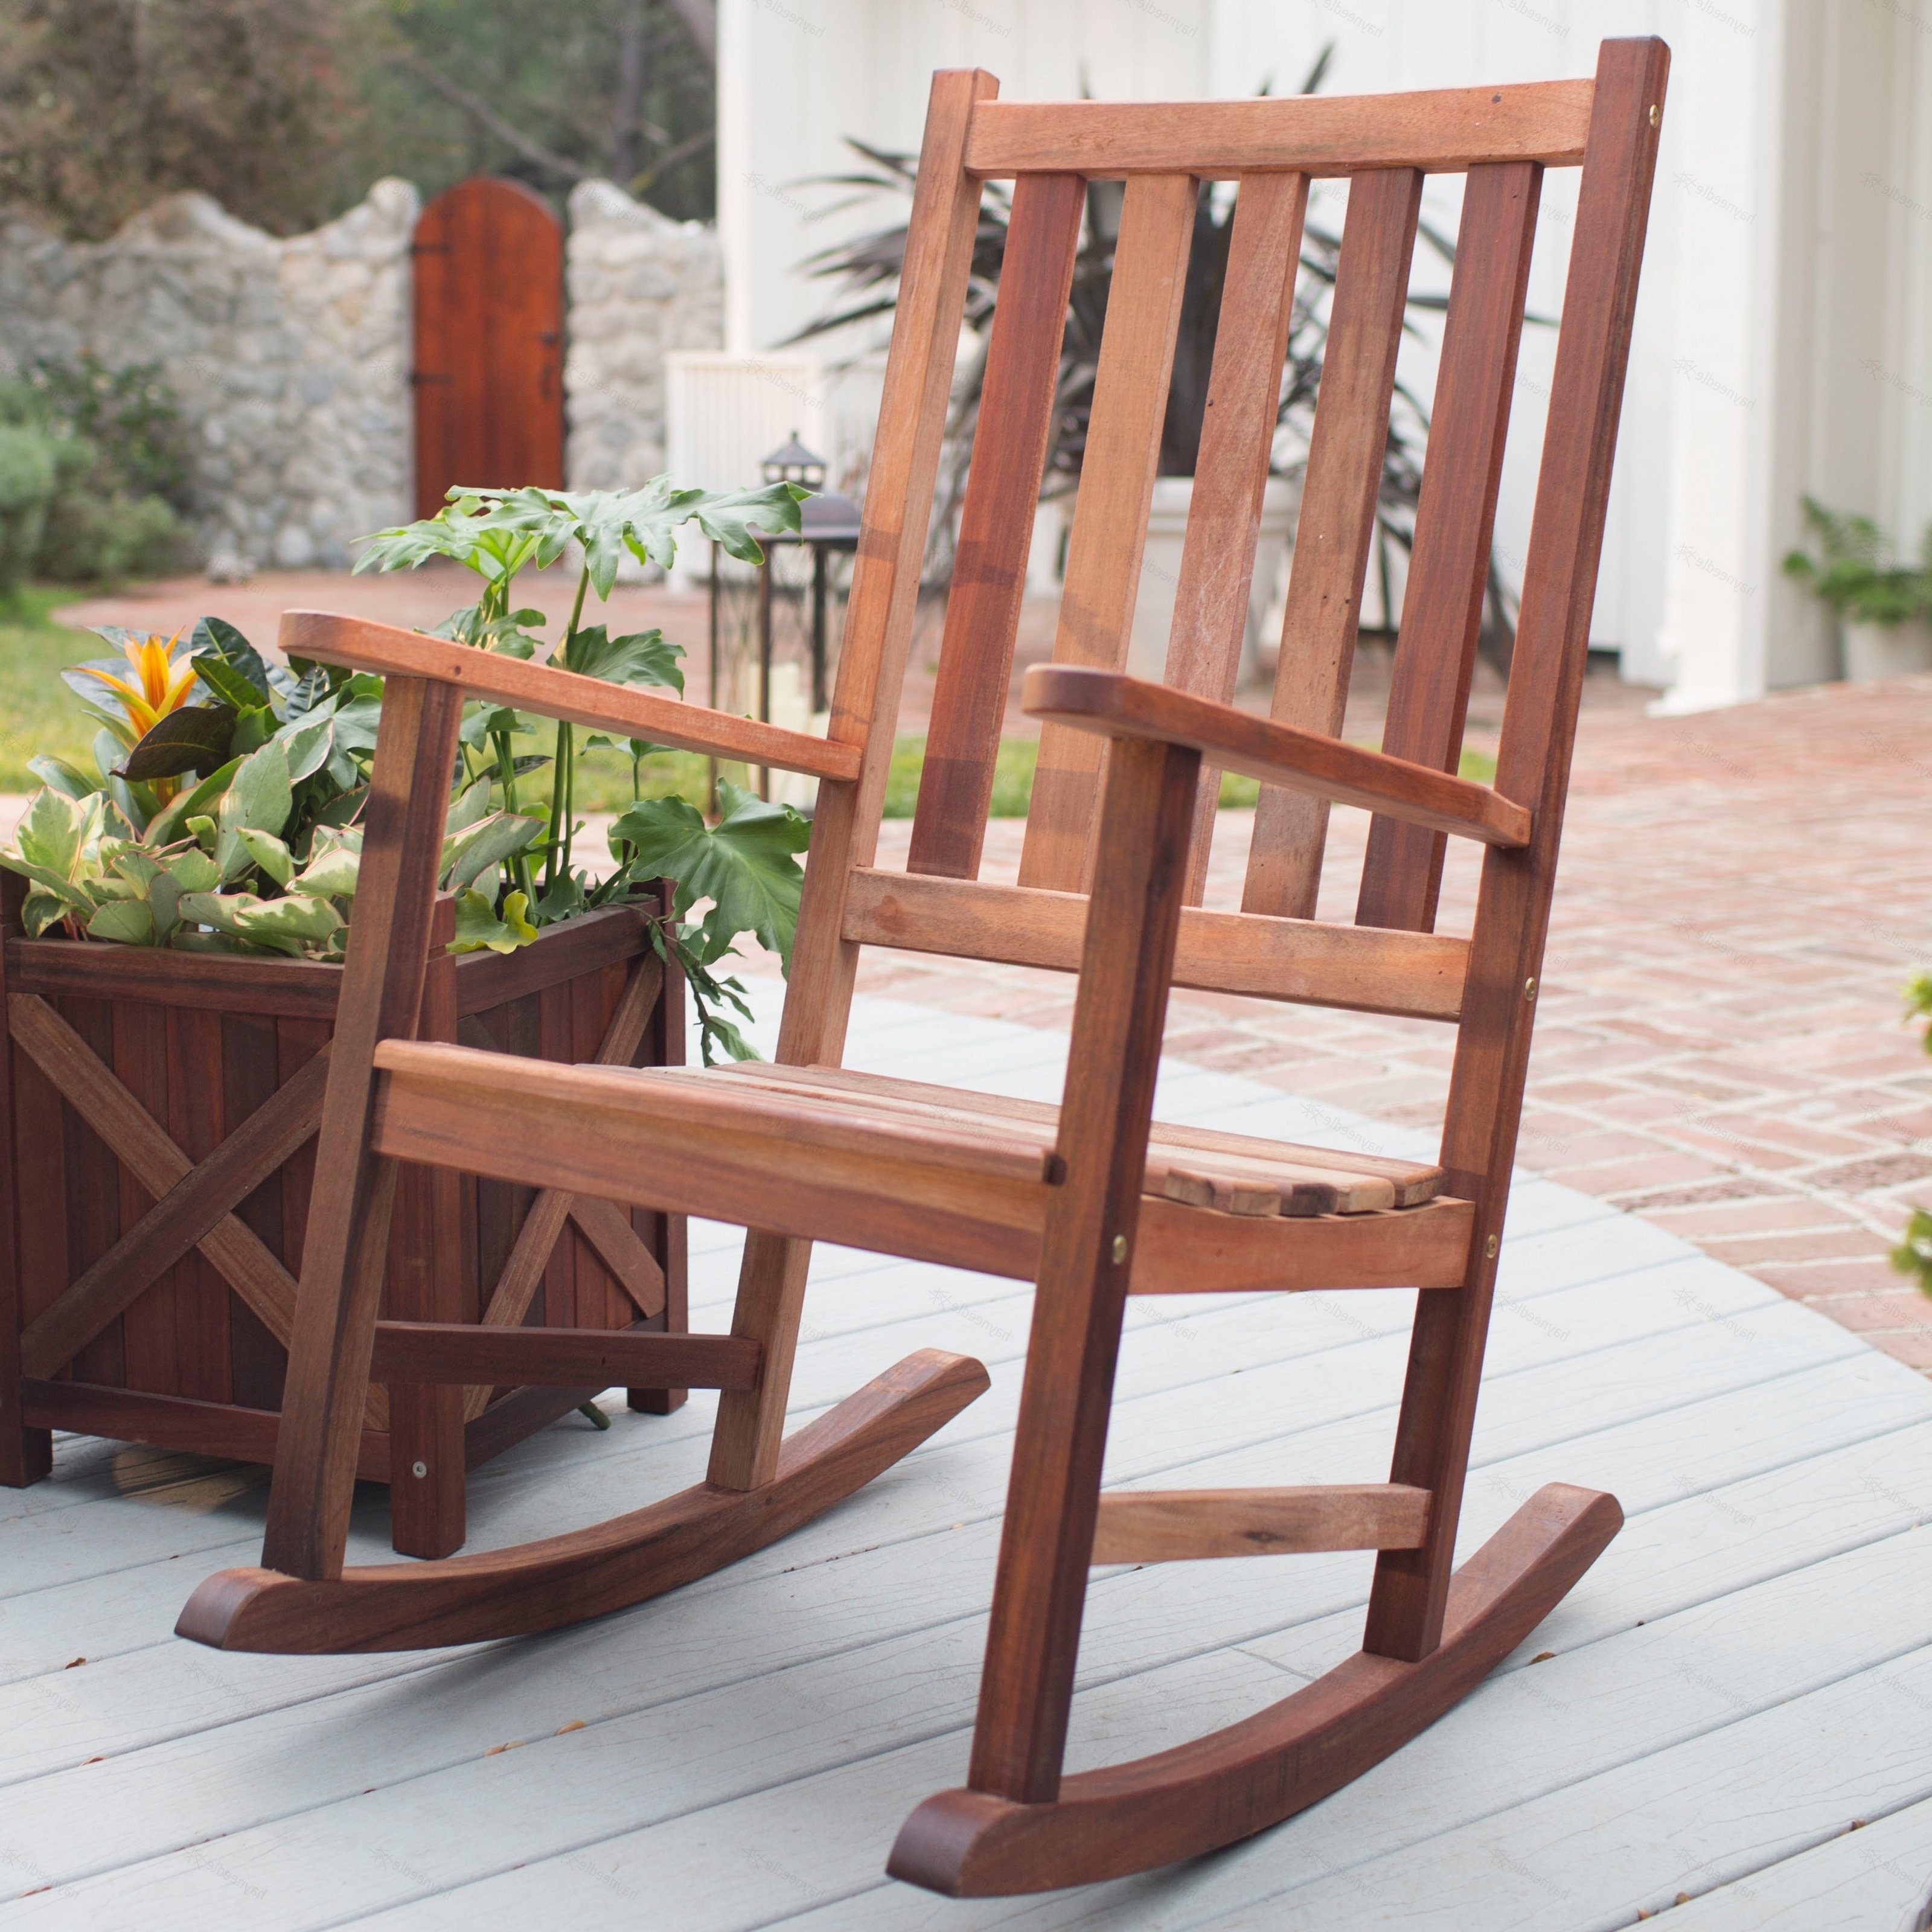 Well Liked Outdoor Rocking Chairs With Cushions Pertaining To Patio & Garden : Outdoor Rocking Chair Cushions Cracker Barrel (View 20 of 20)